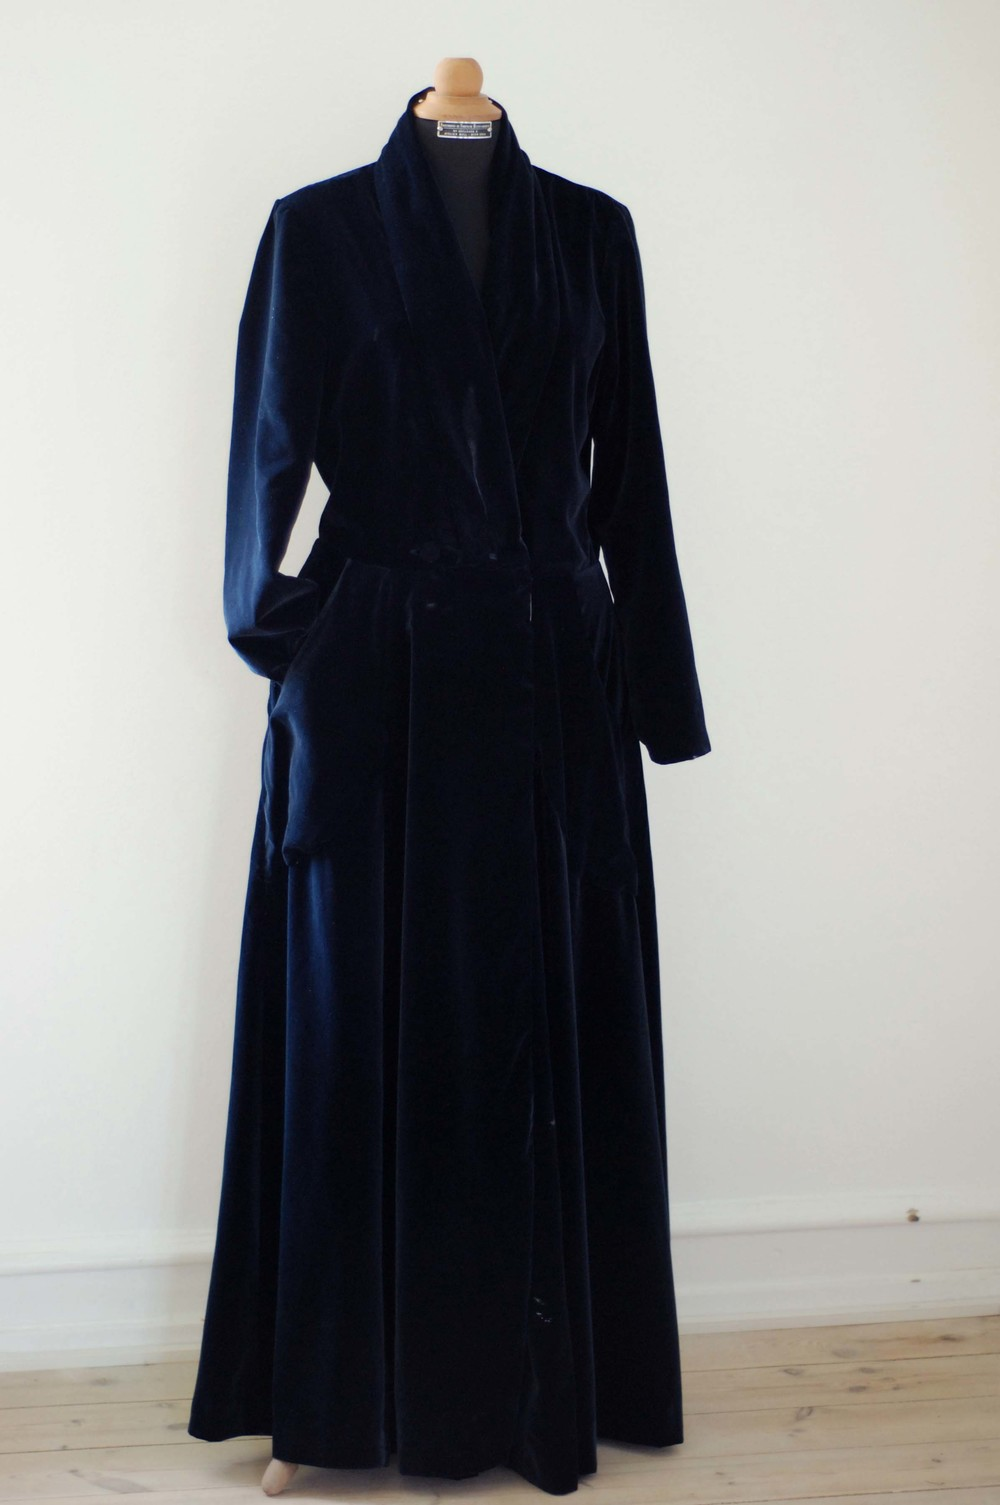 hjemmesyet Housecoat i velour og silke 1800 kr / homemade Housecoat in velvet and silk 1800 dkk